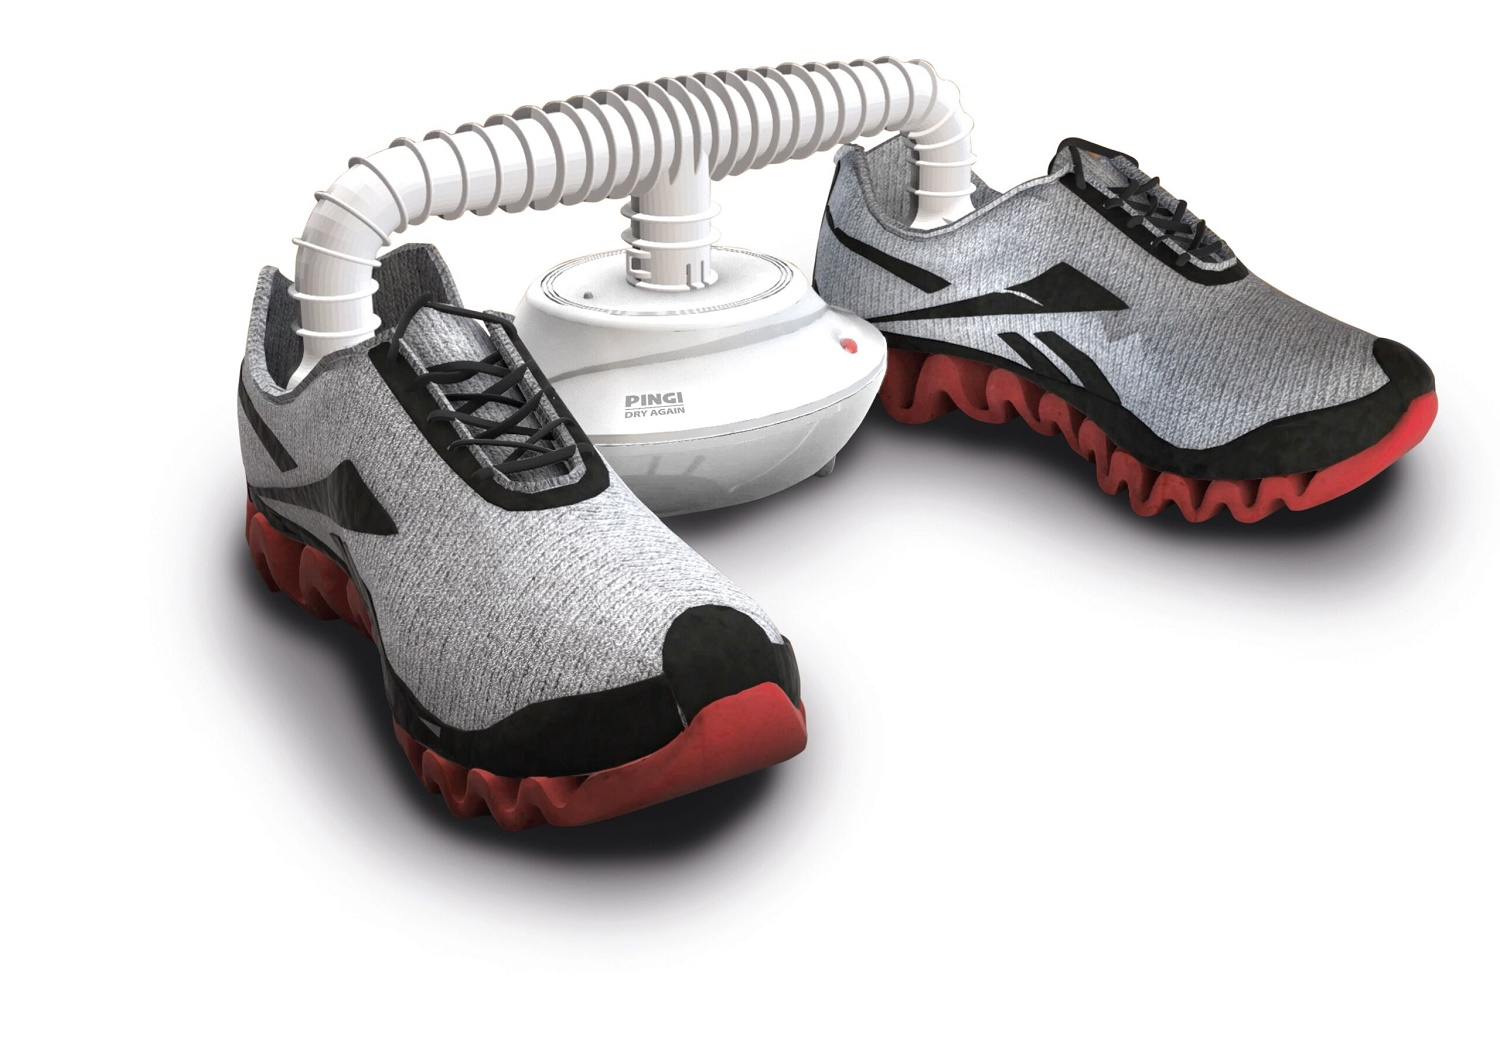 PINGI DRY AGAIN SHOE DRIER EXPANSION PACK